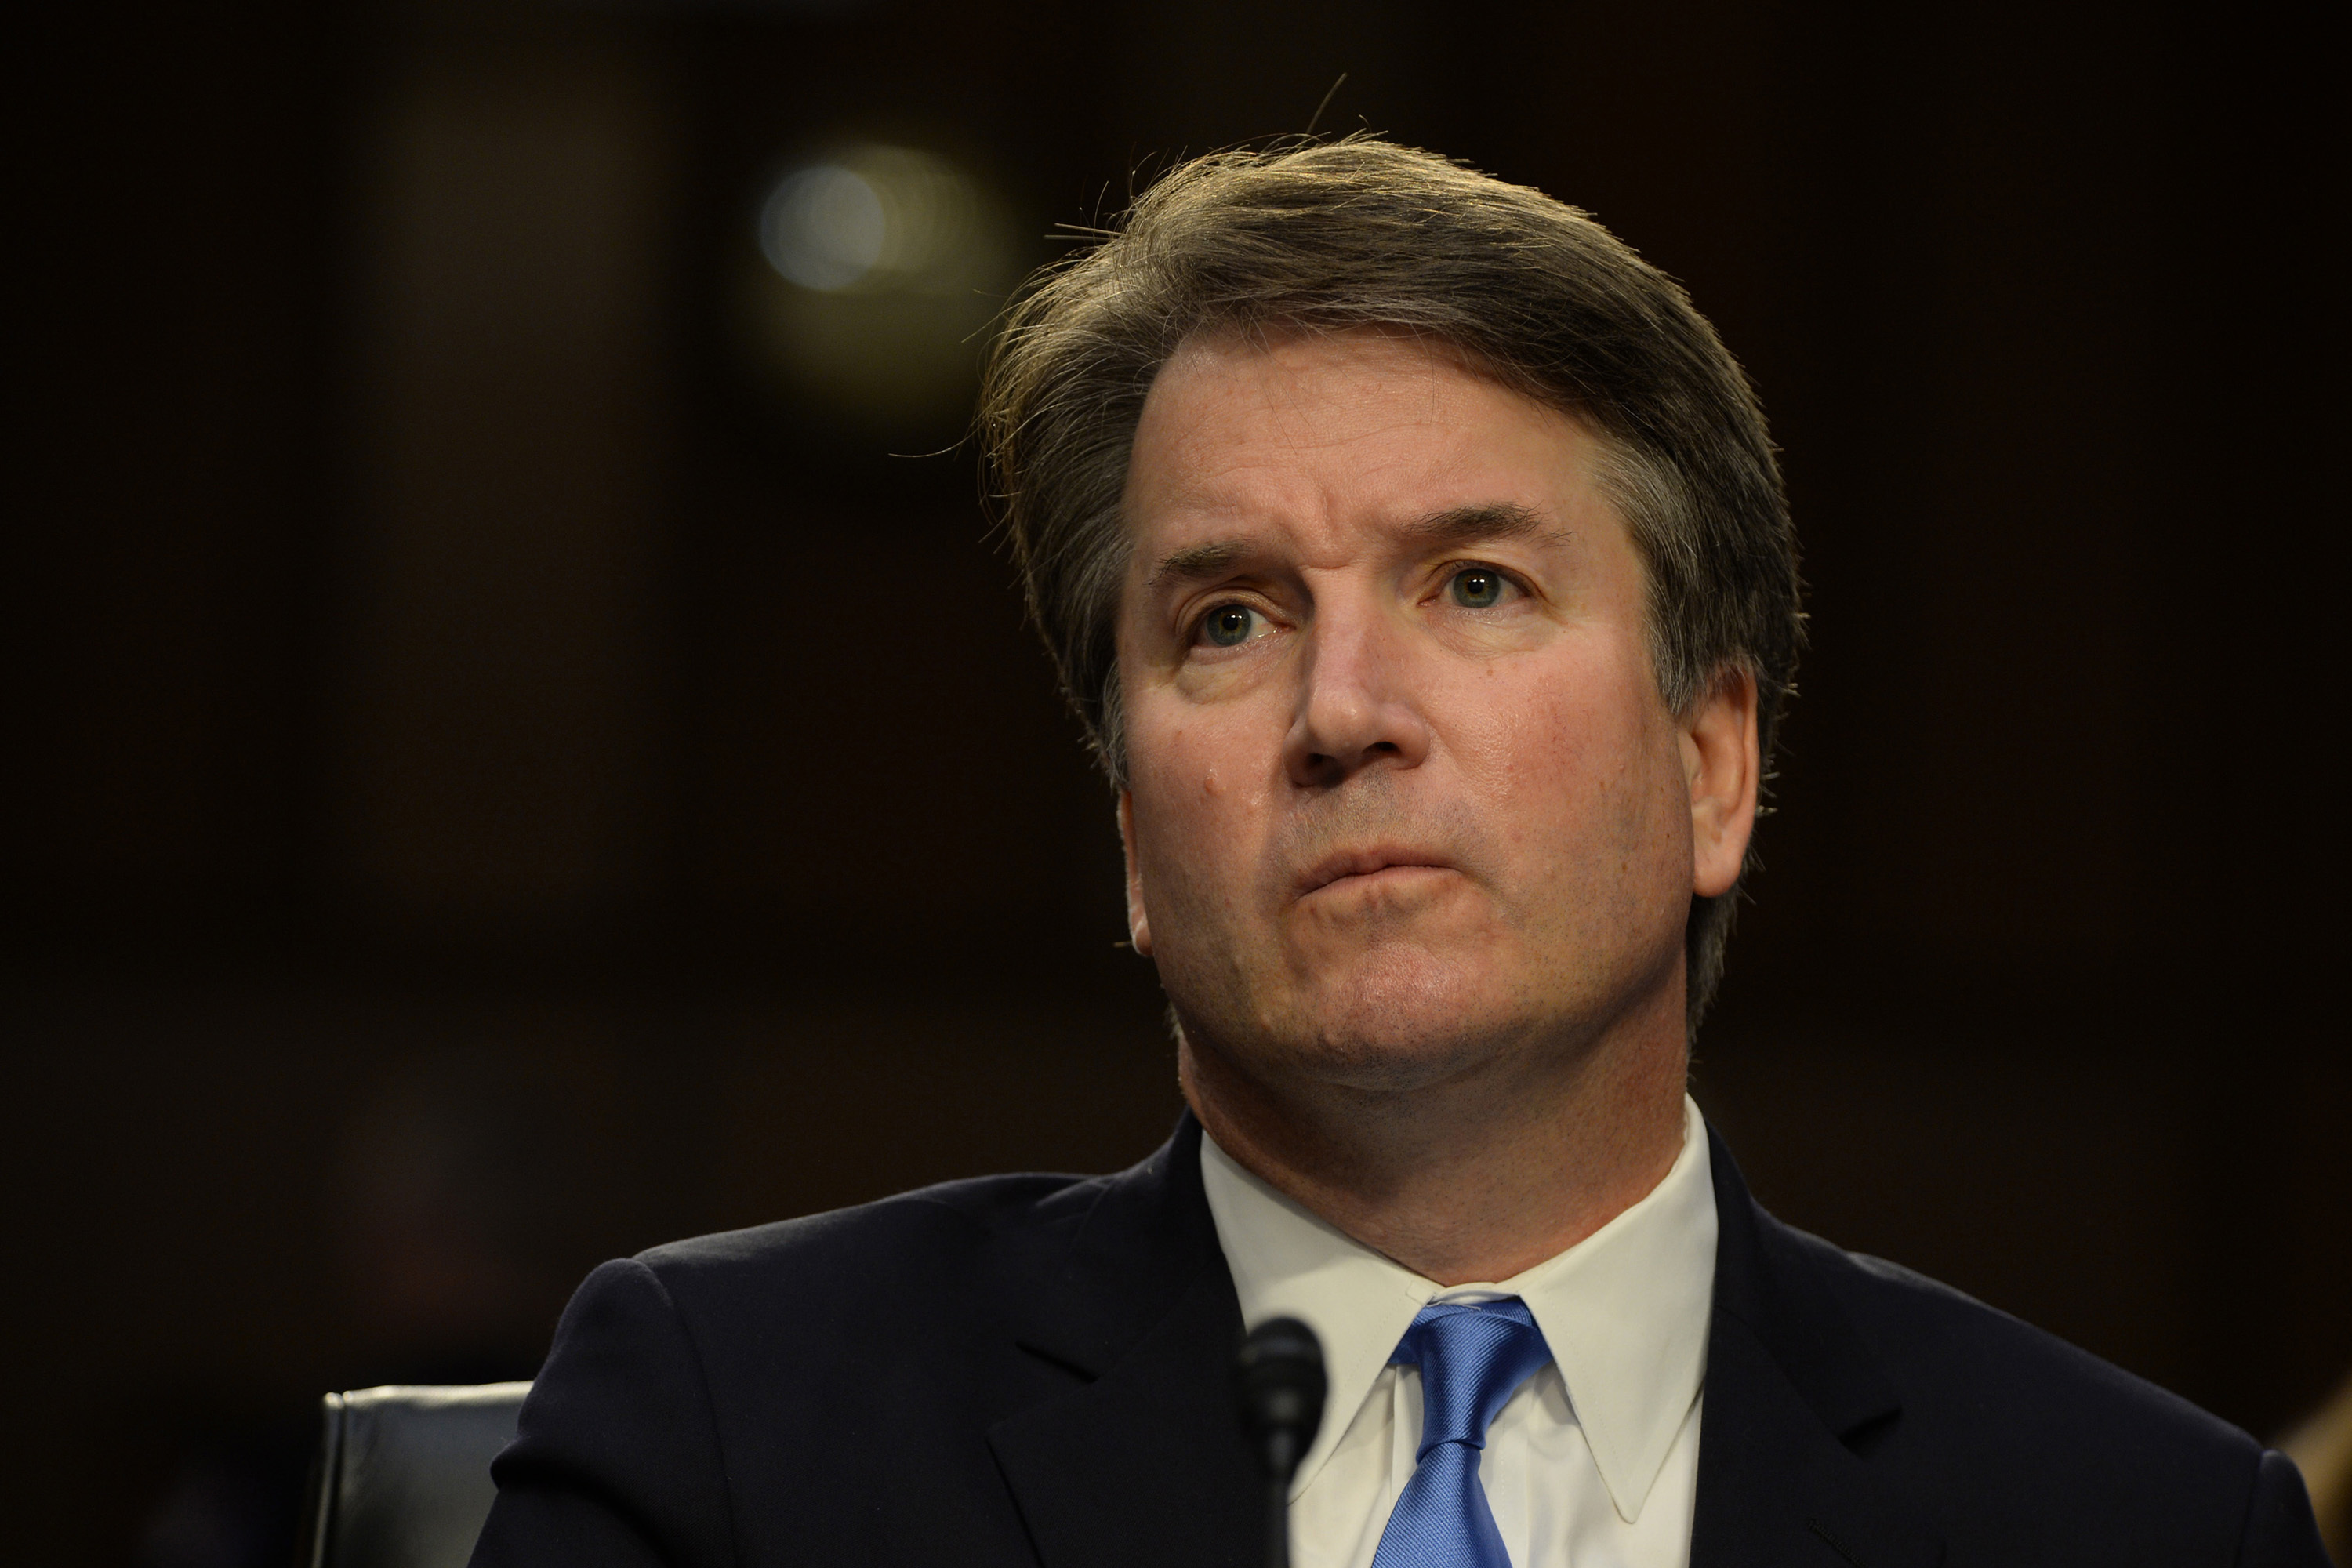 Supreme Court Associate Justice nominee Brett Kavanaugh at his confirmation hearing before the Senate Judiciary Committee in the Hart Senate Office Building in Washington, D.C., on Wednesday, Sept. 5, 2018.